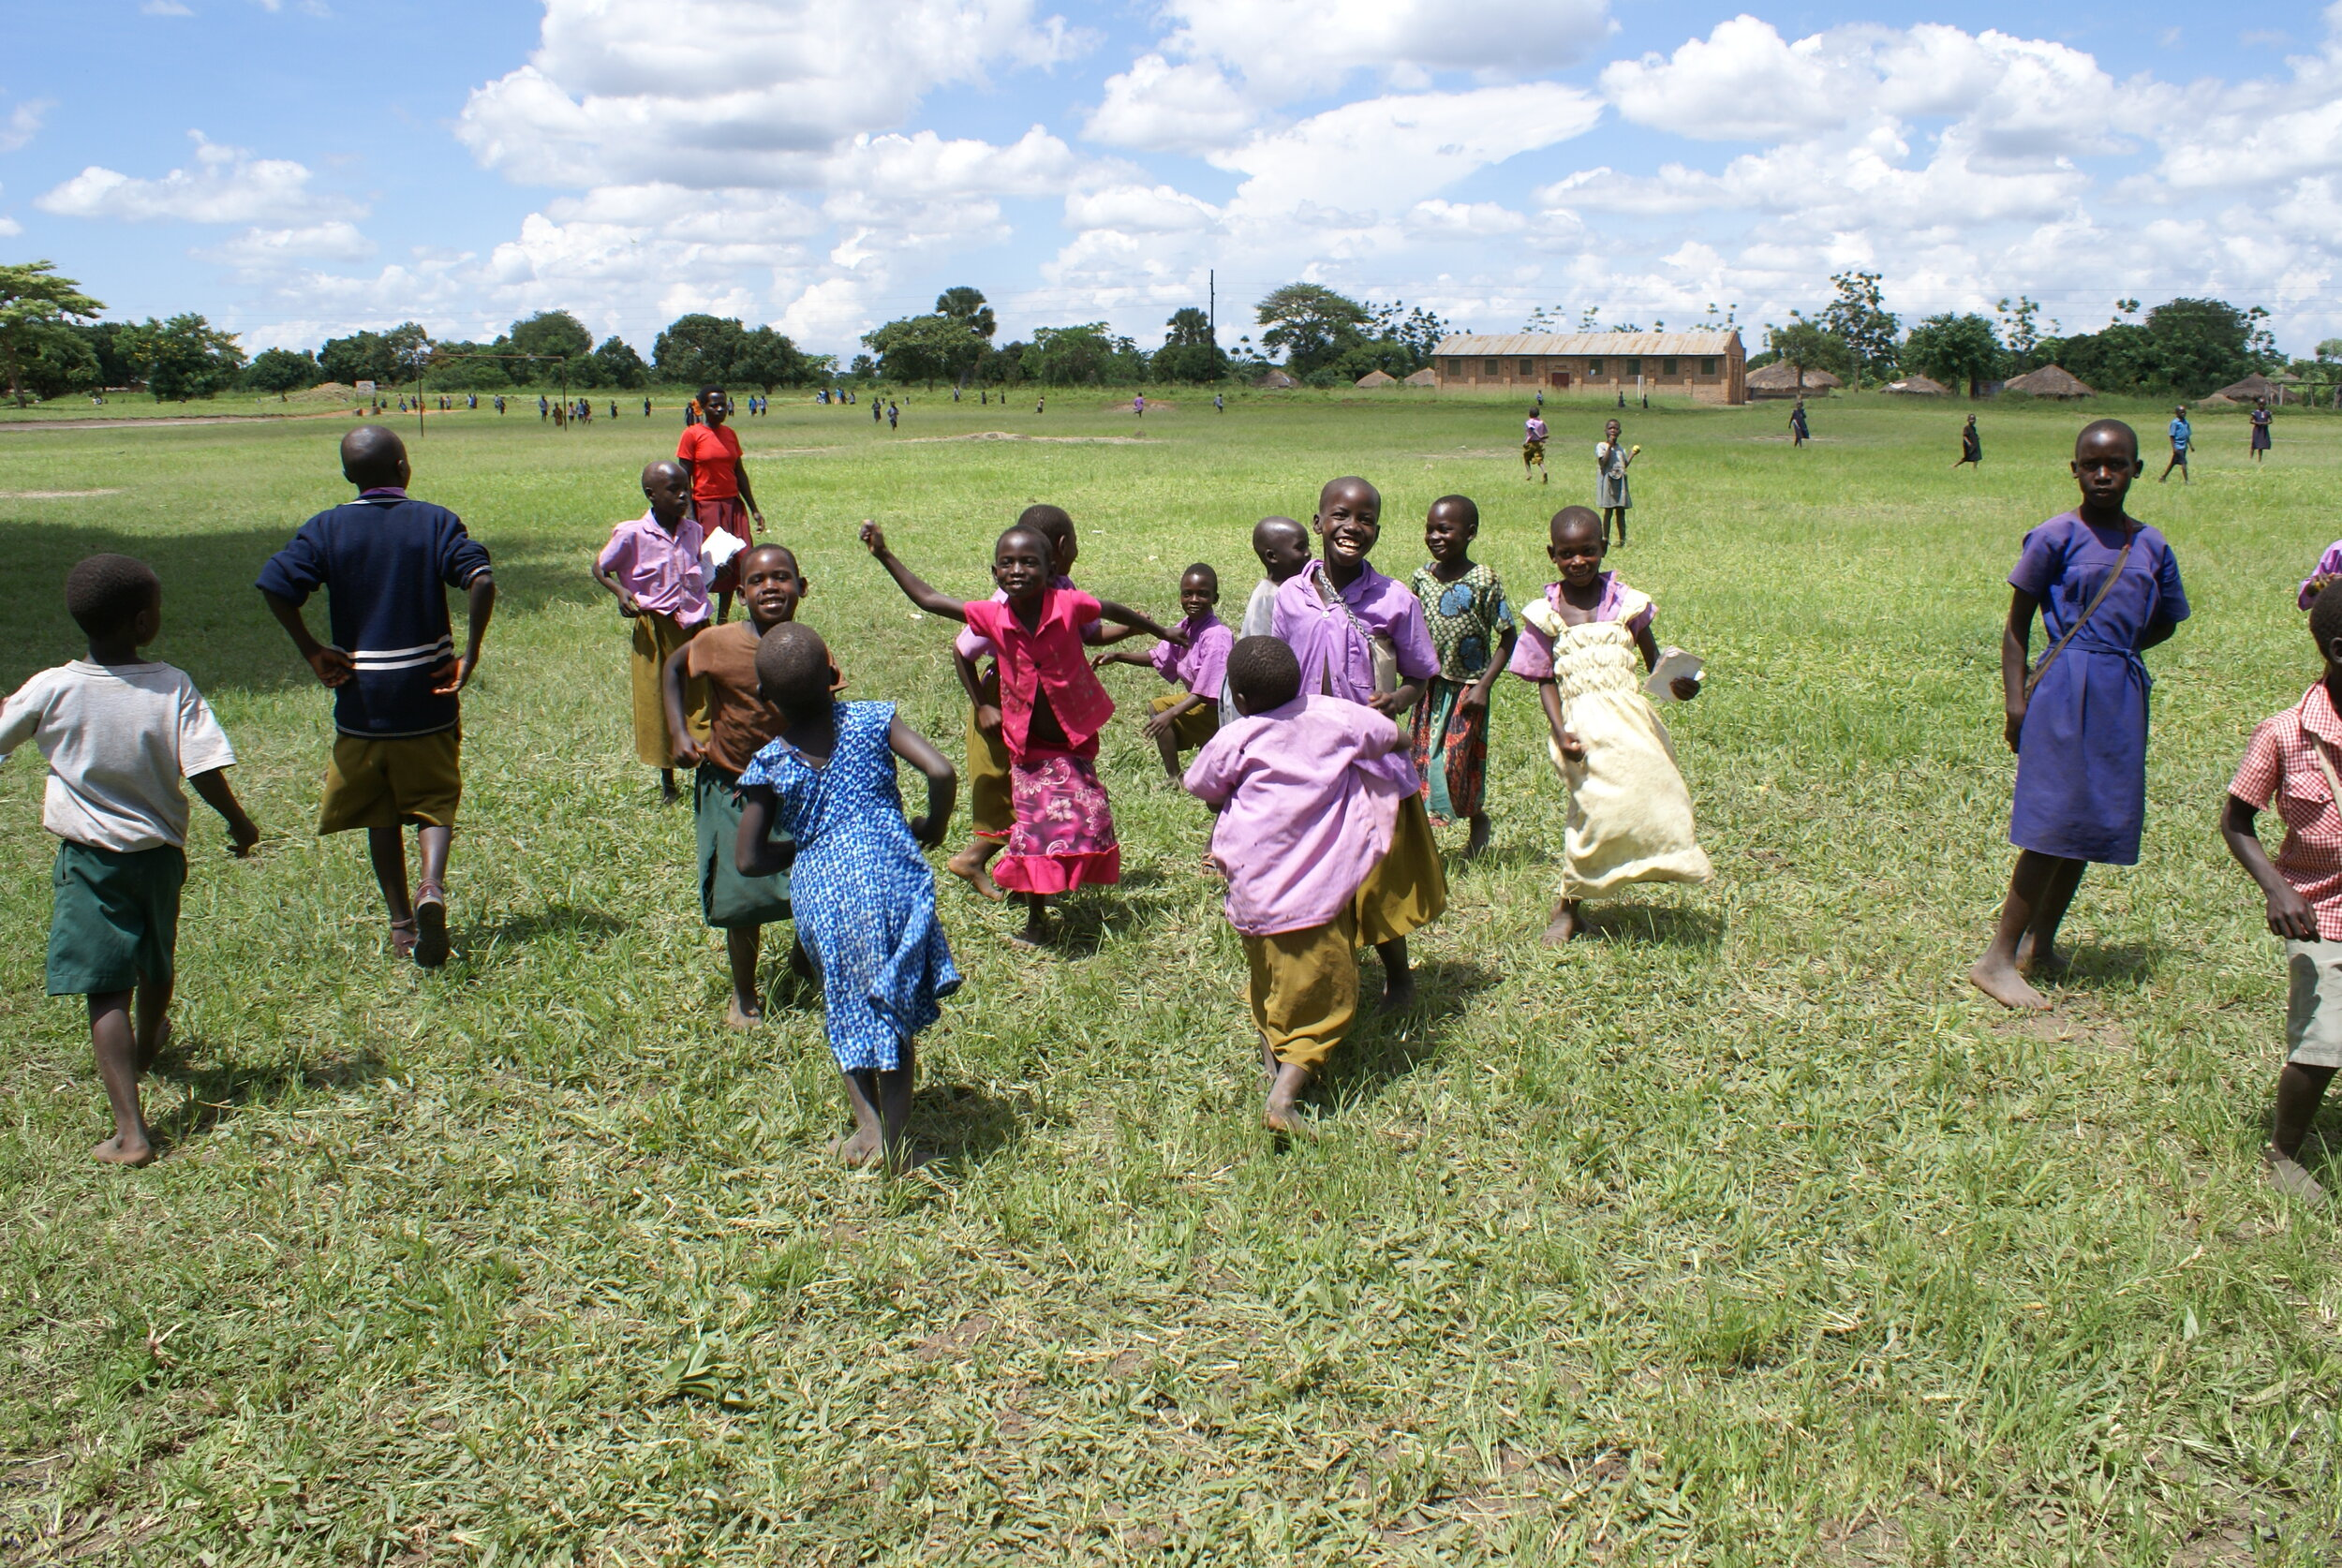 Alenga, Uganda - Learn more about the place and the people you can support.